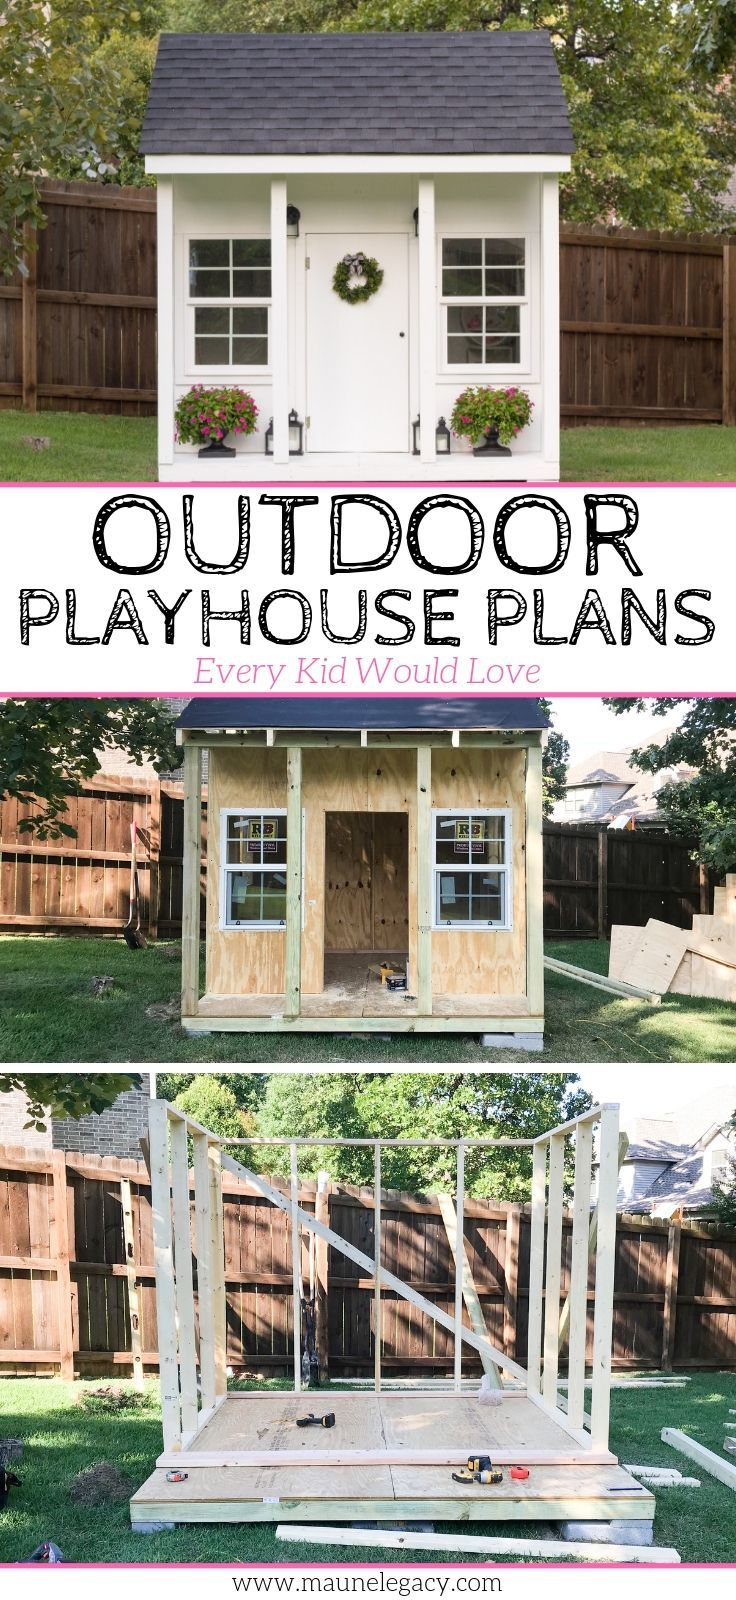 Outside Playhouse Plans